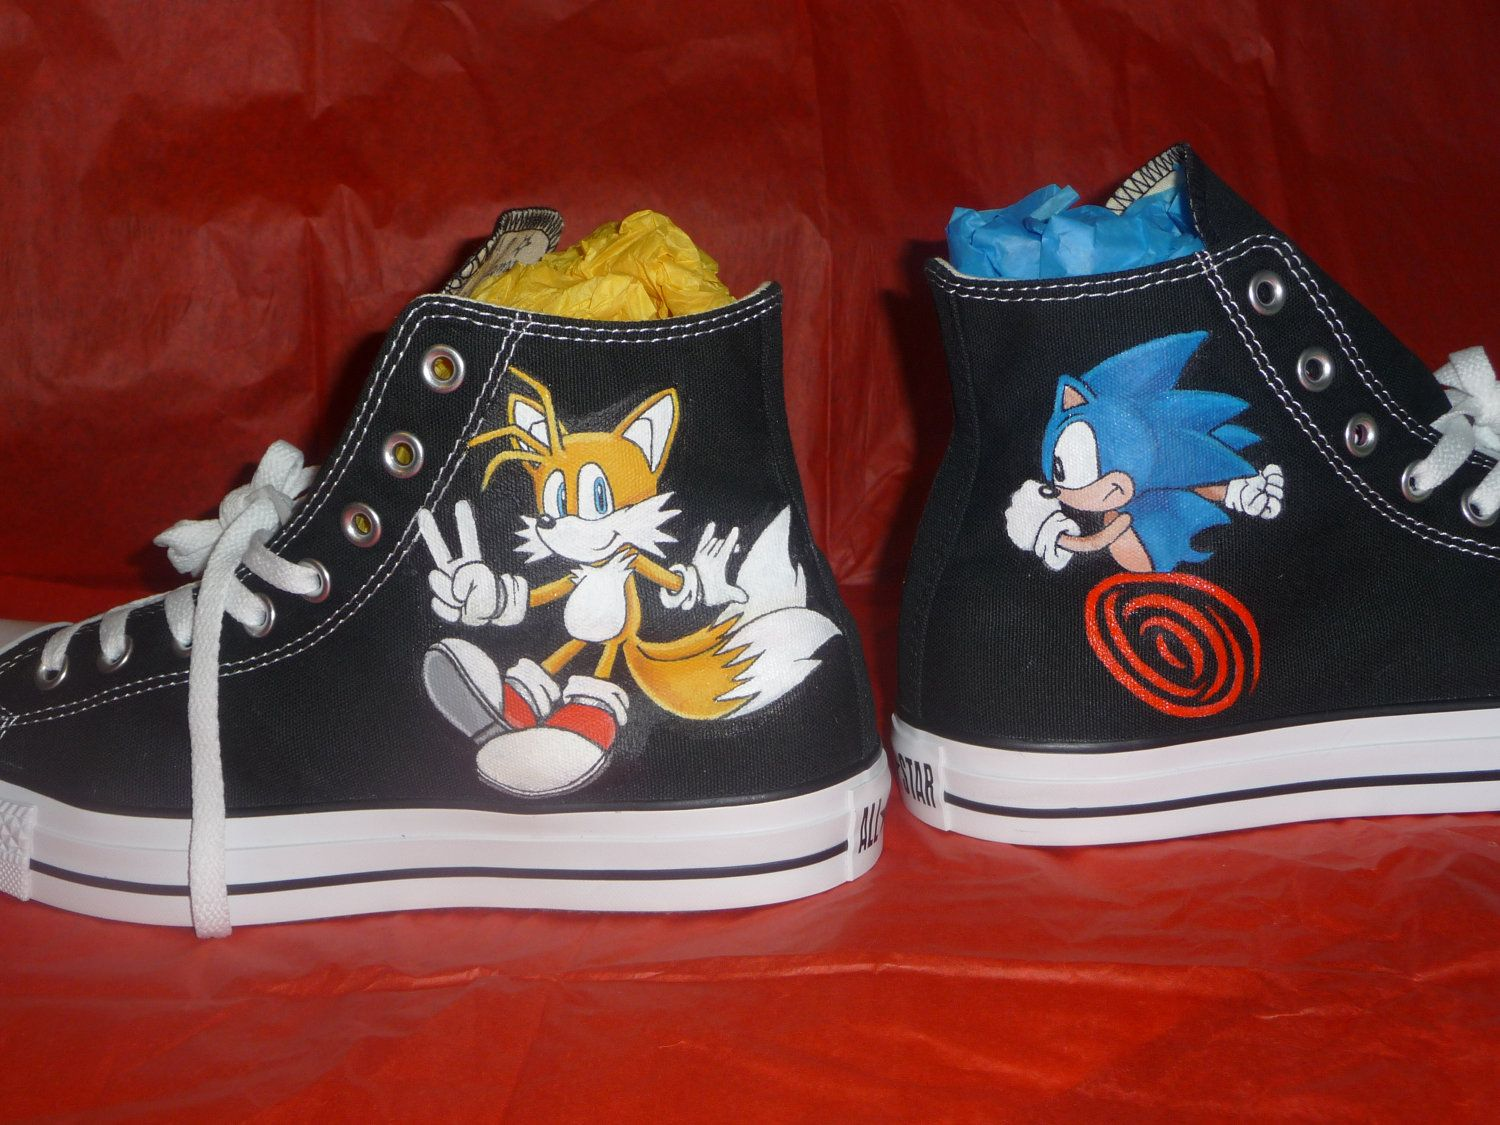 55b064e892d6 Custom Hand Painted Converse ALL STAR High Top shoes - Sonic and Tails -  any size.  165.00